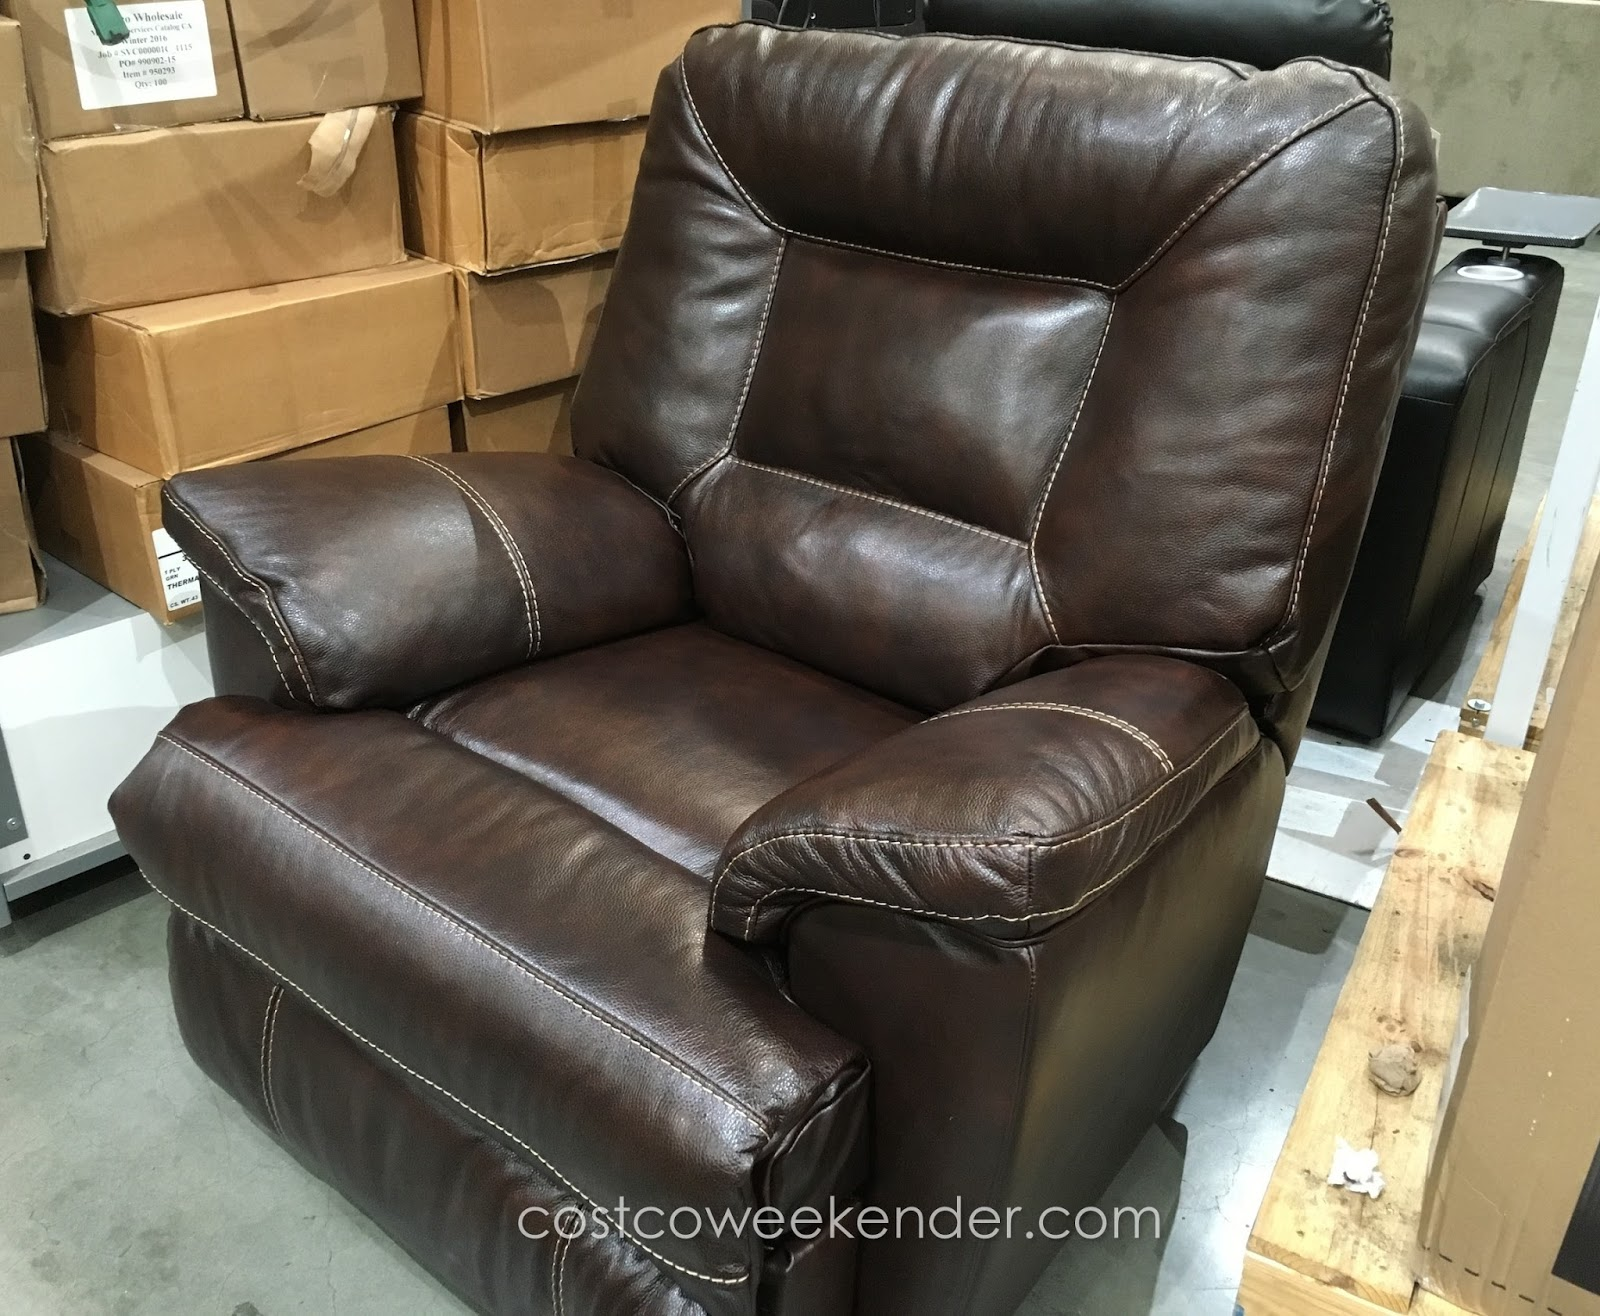 Costco Swivel Chair Posture Care Company Sa Berkline Leather Rocker Recliner Weekender